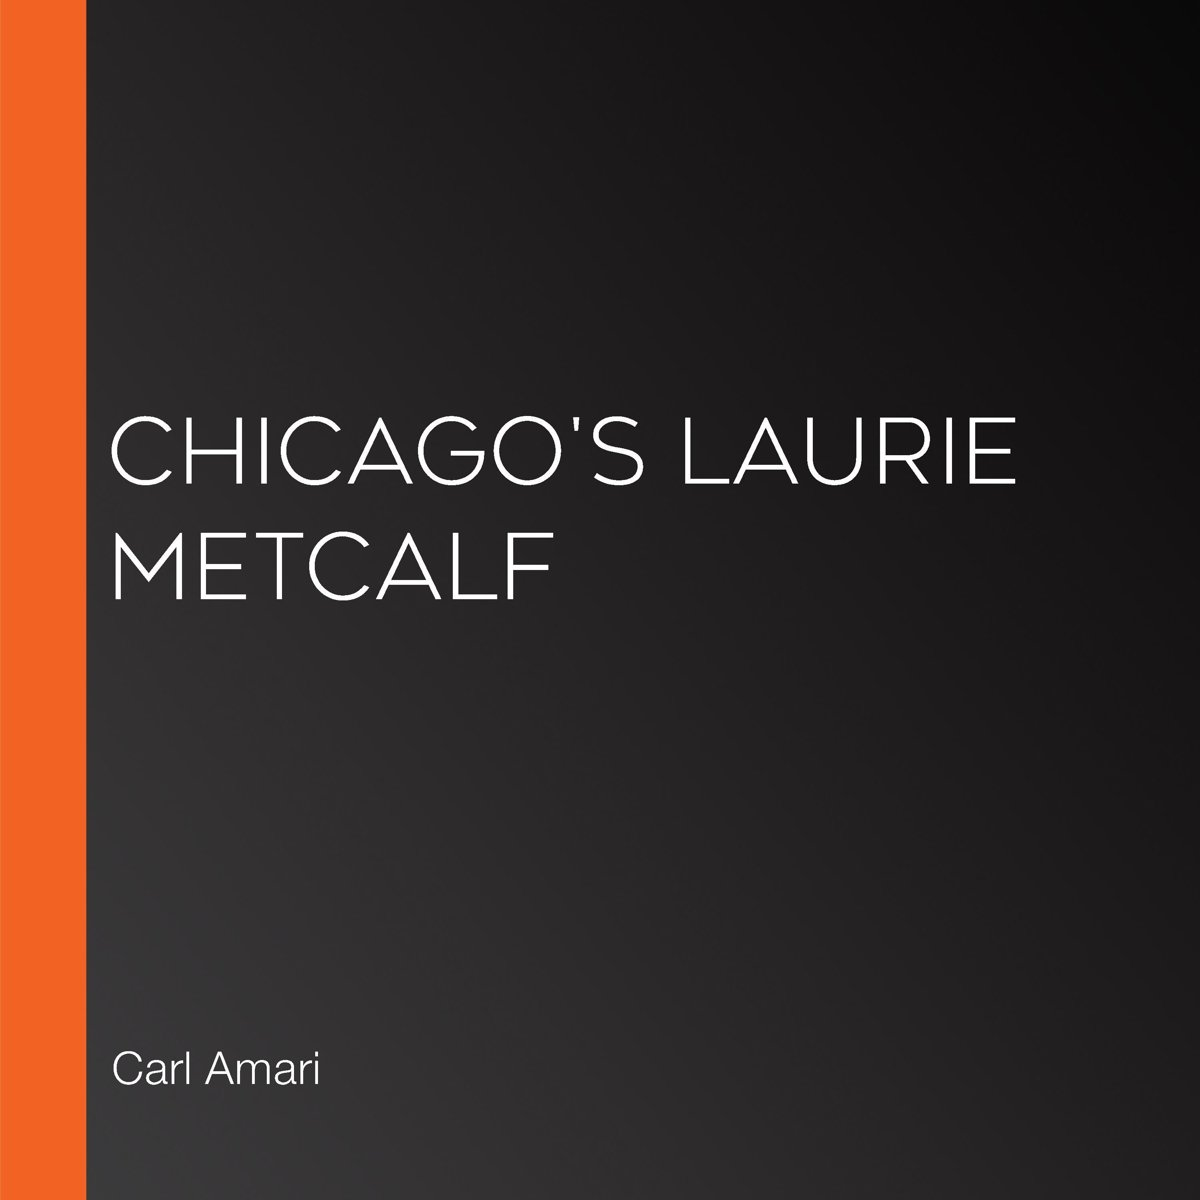 Chicago's Laurie Metcalf